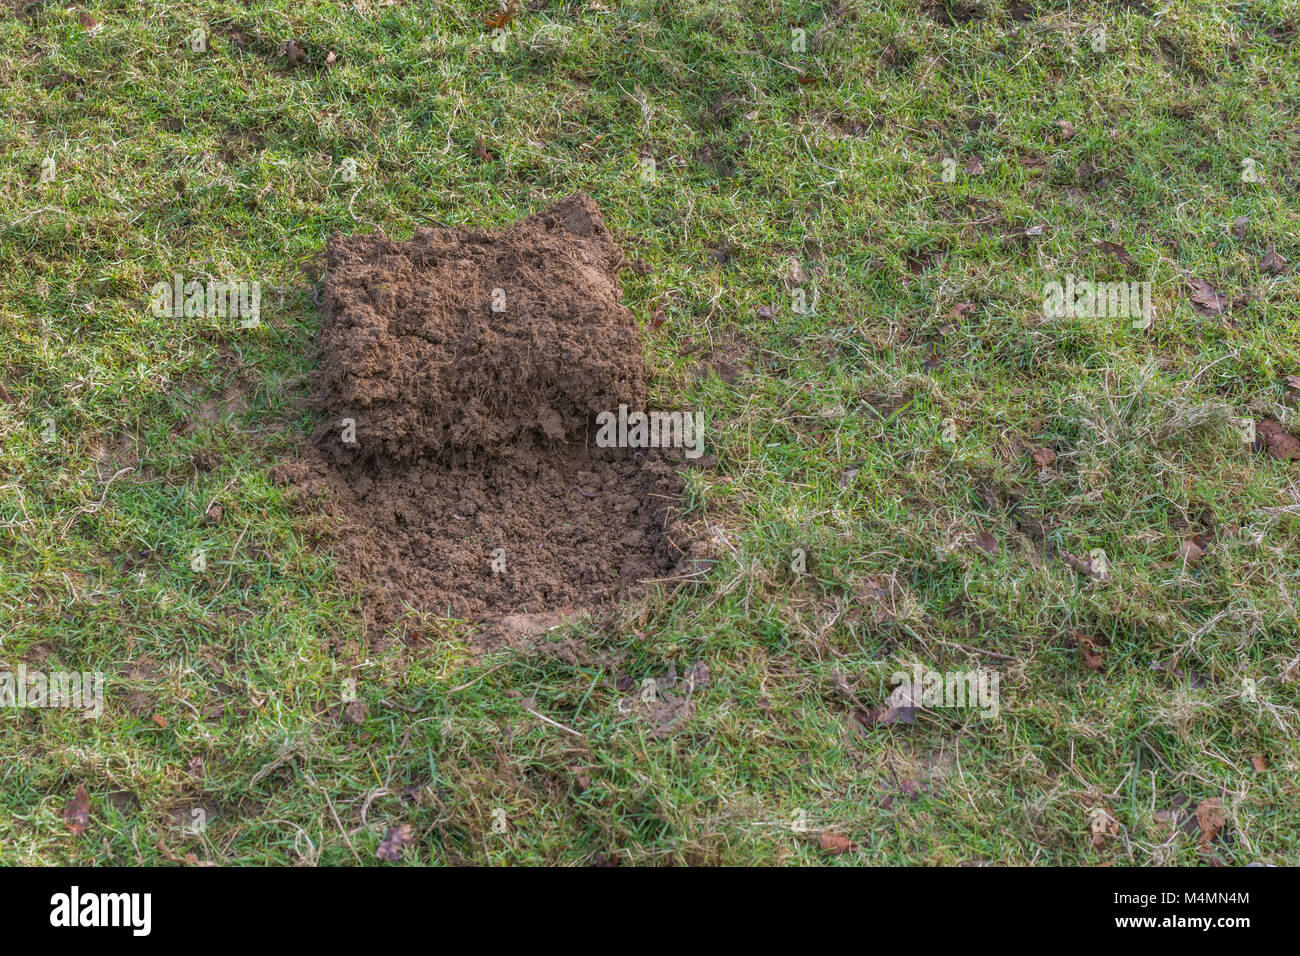 Grass turf cut away to form a shallow pit for a covert survival fire which 'leaves no trace'. Fire pit before - Stock Image